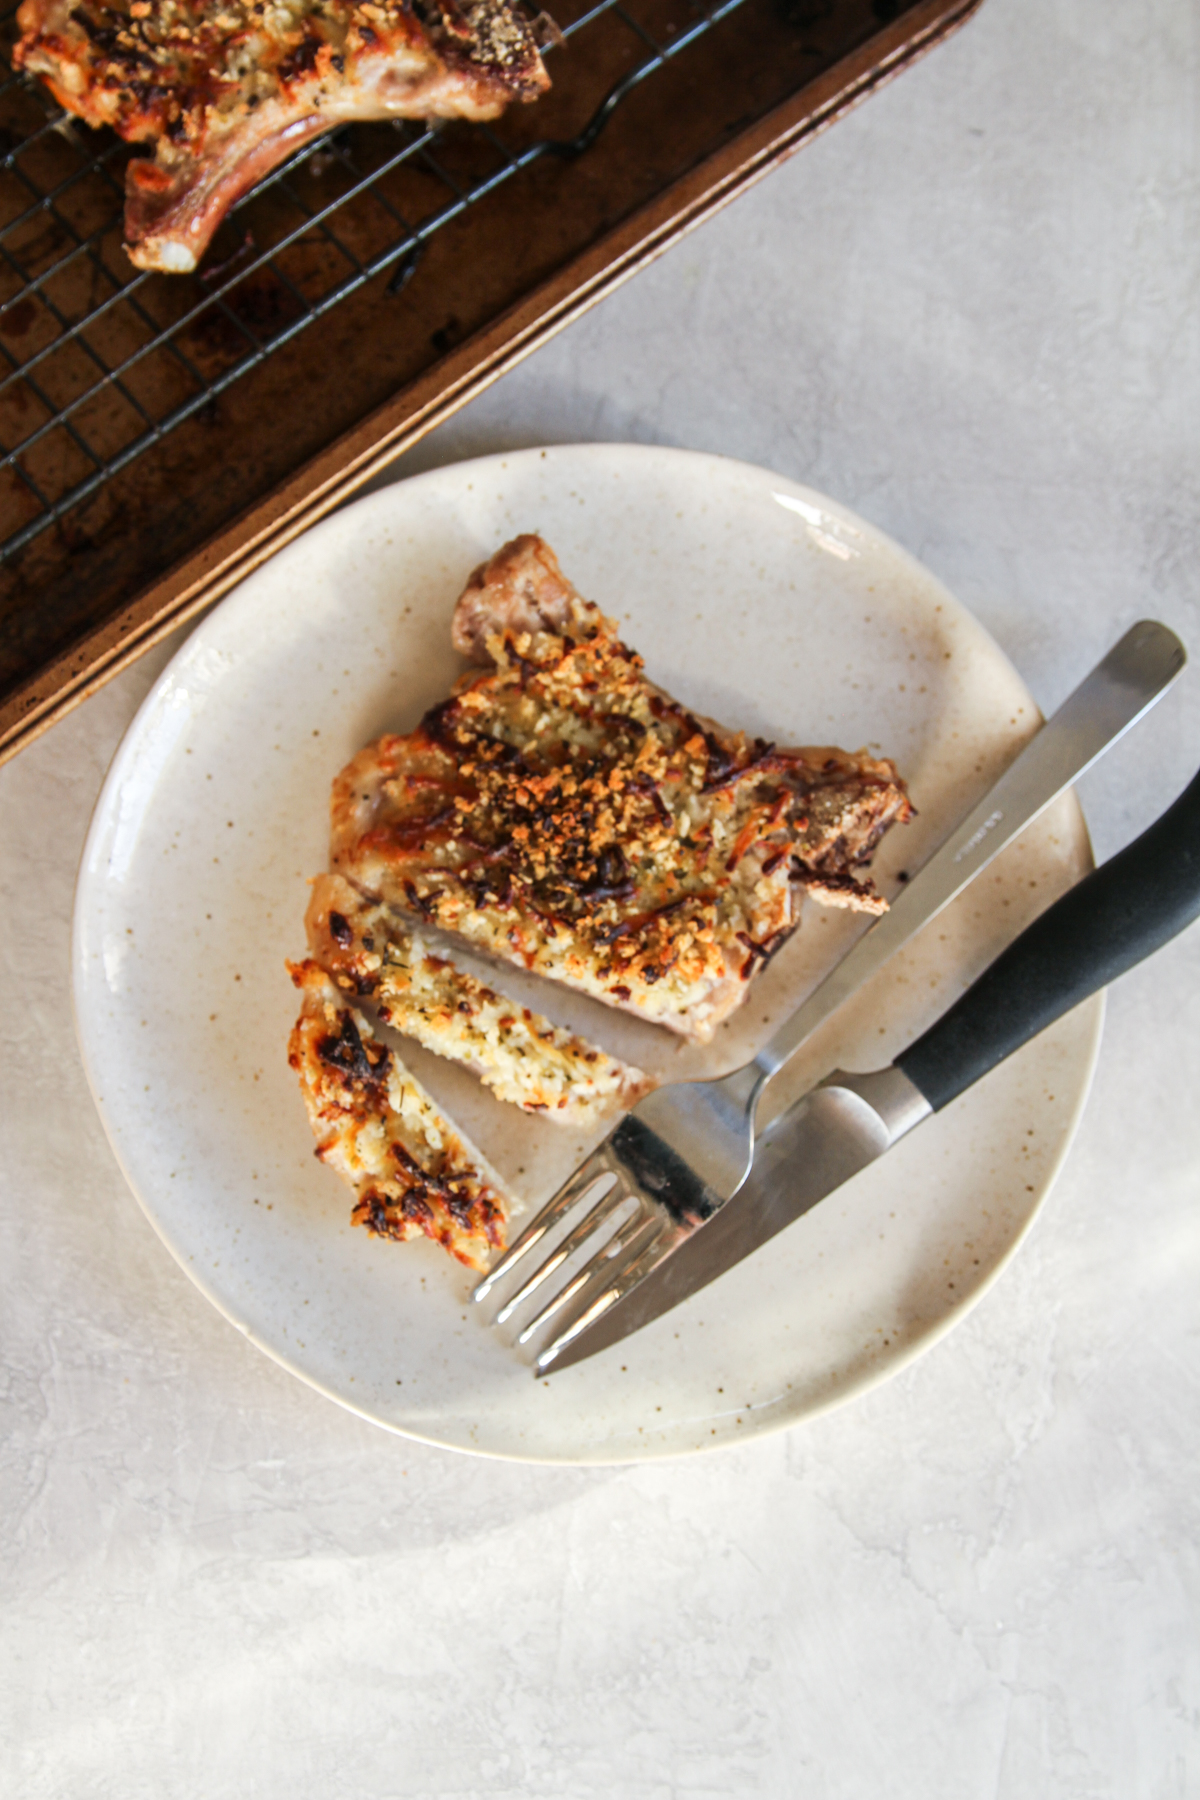 5 Ingredient oven baked pork chops with a mozzarella crumb topping